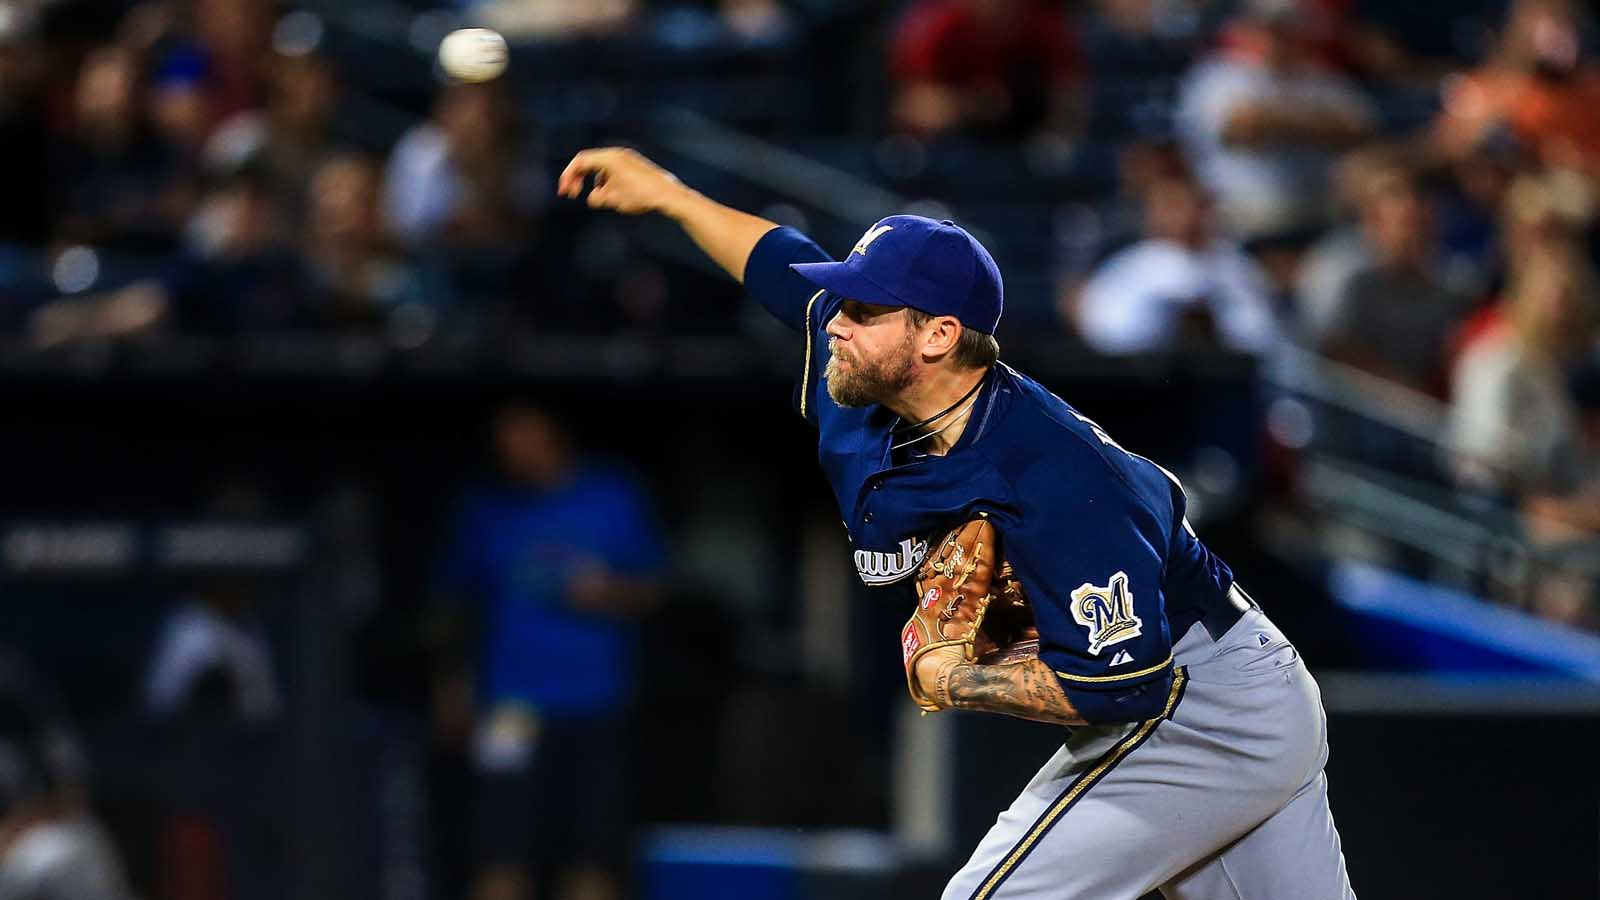 Brewers recall Blazek, option Knebel